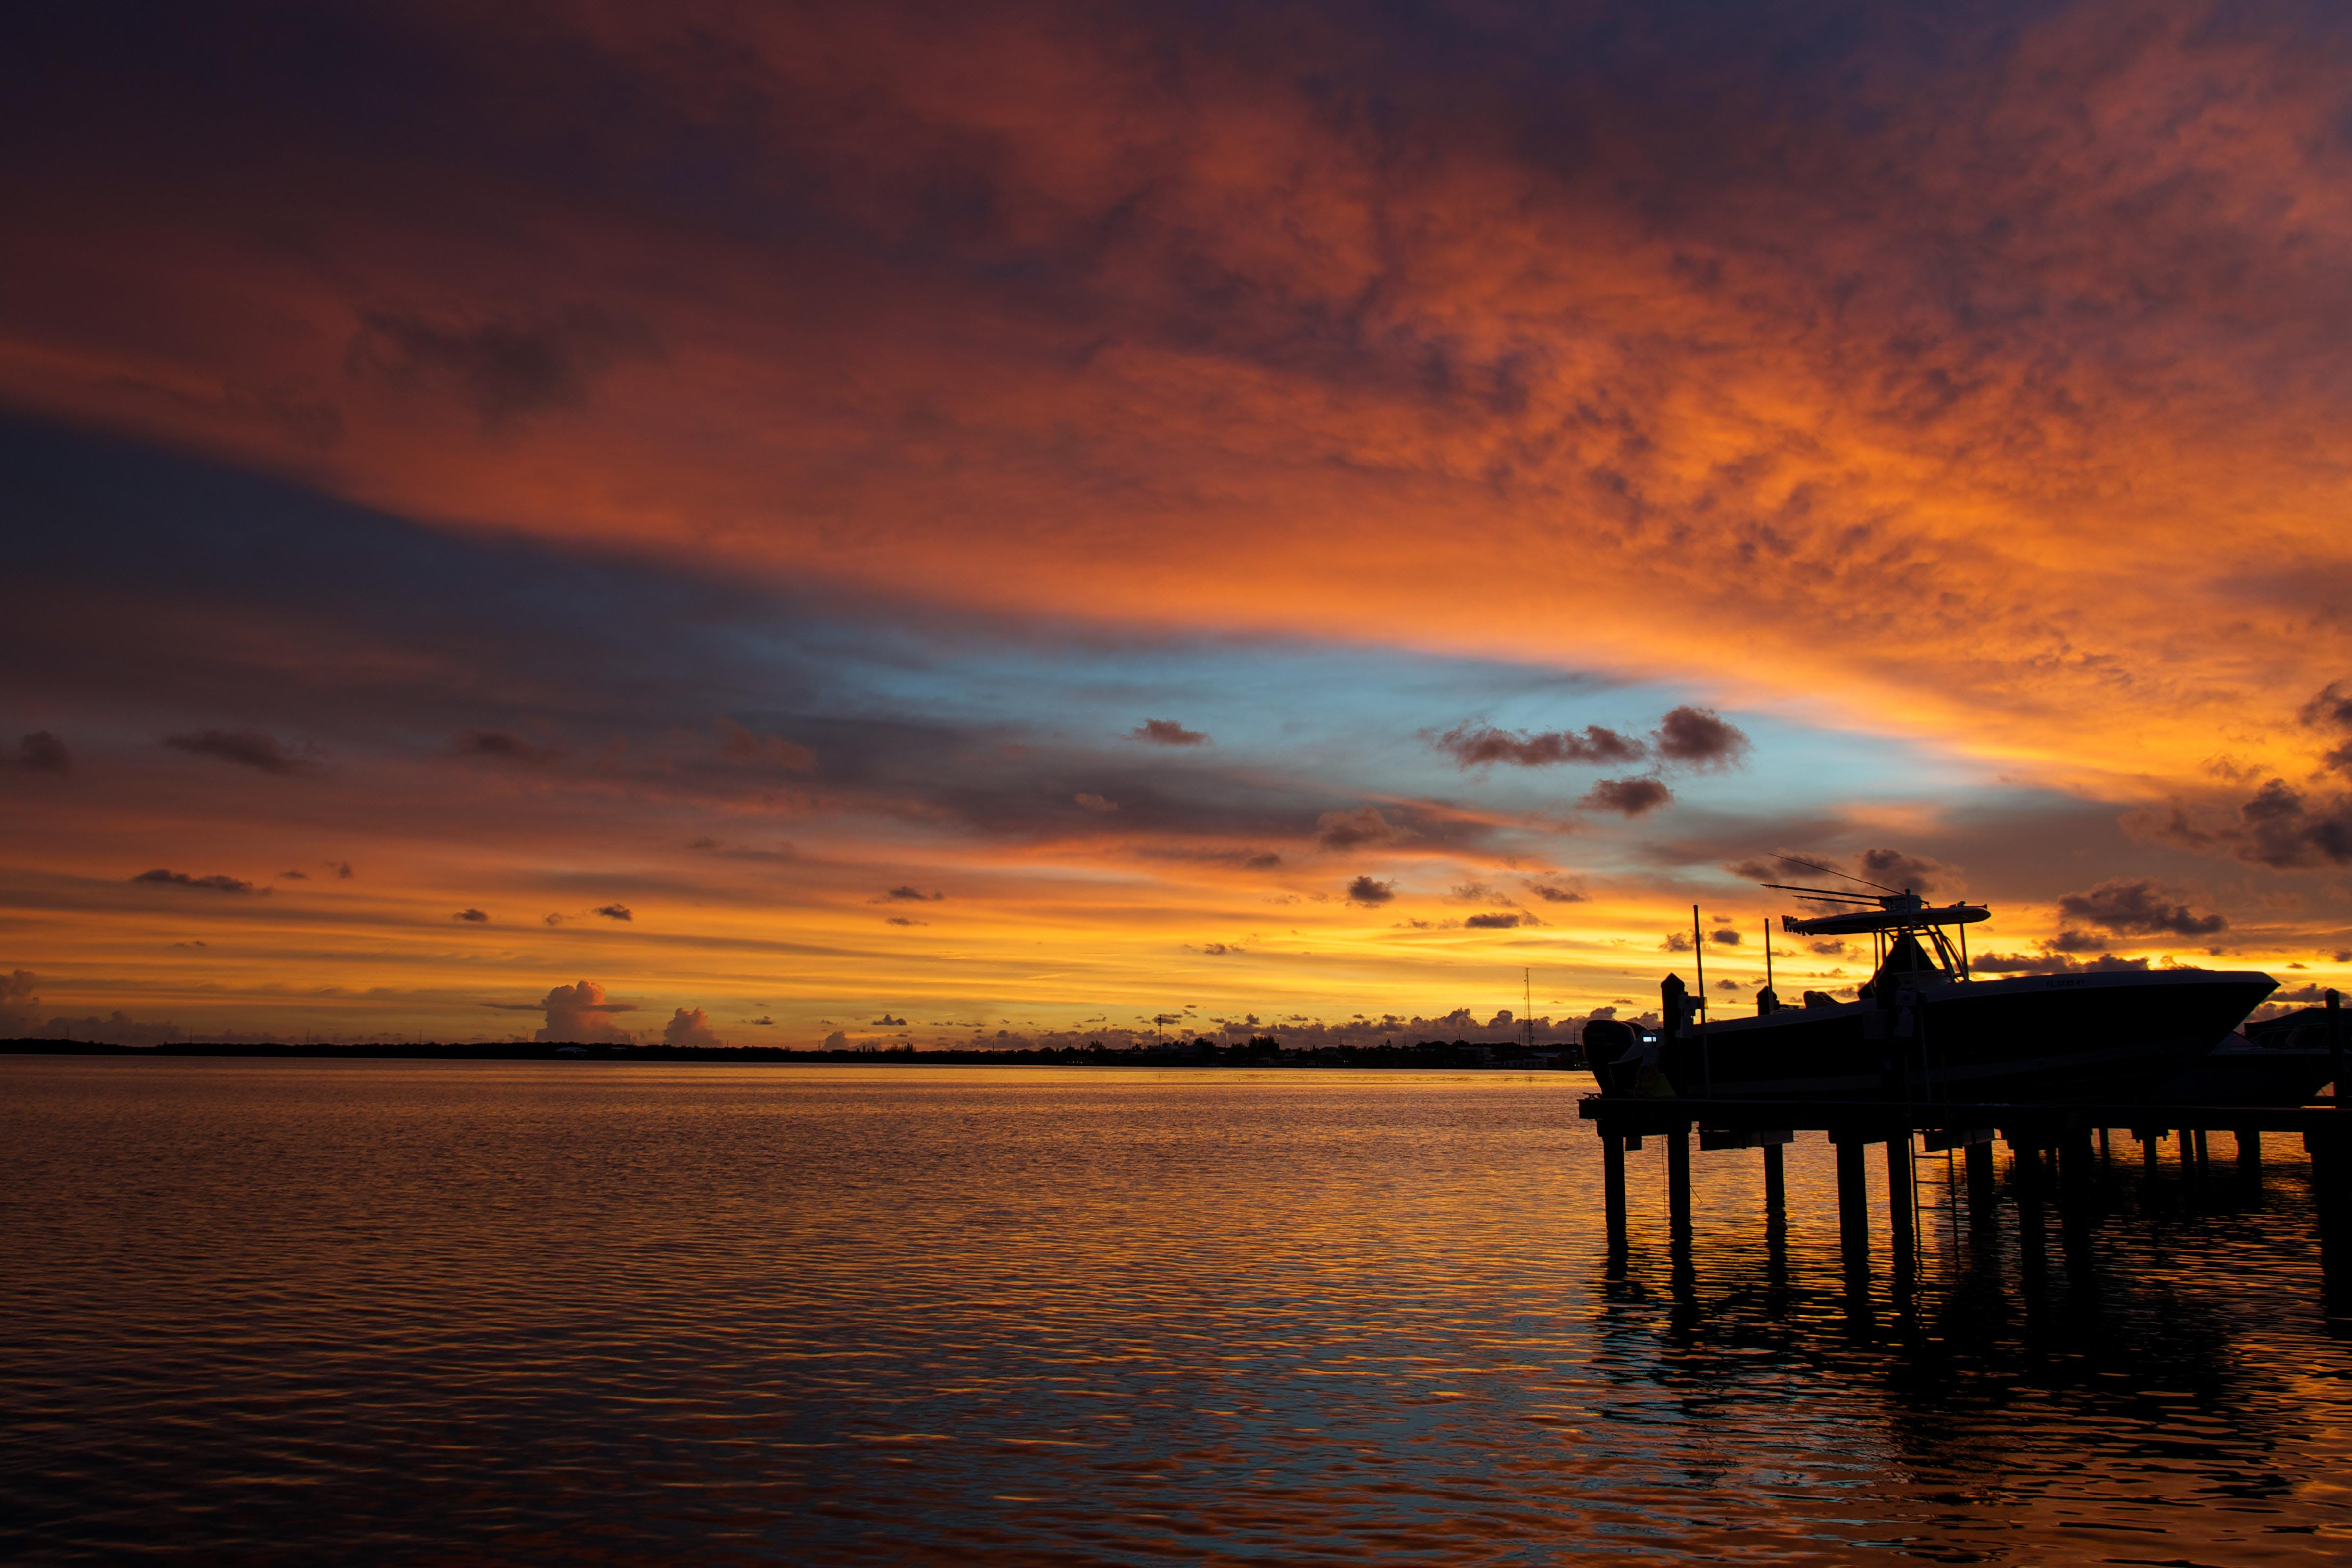 Silhouette of Wooden Dock on Sea during Golden Hour